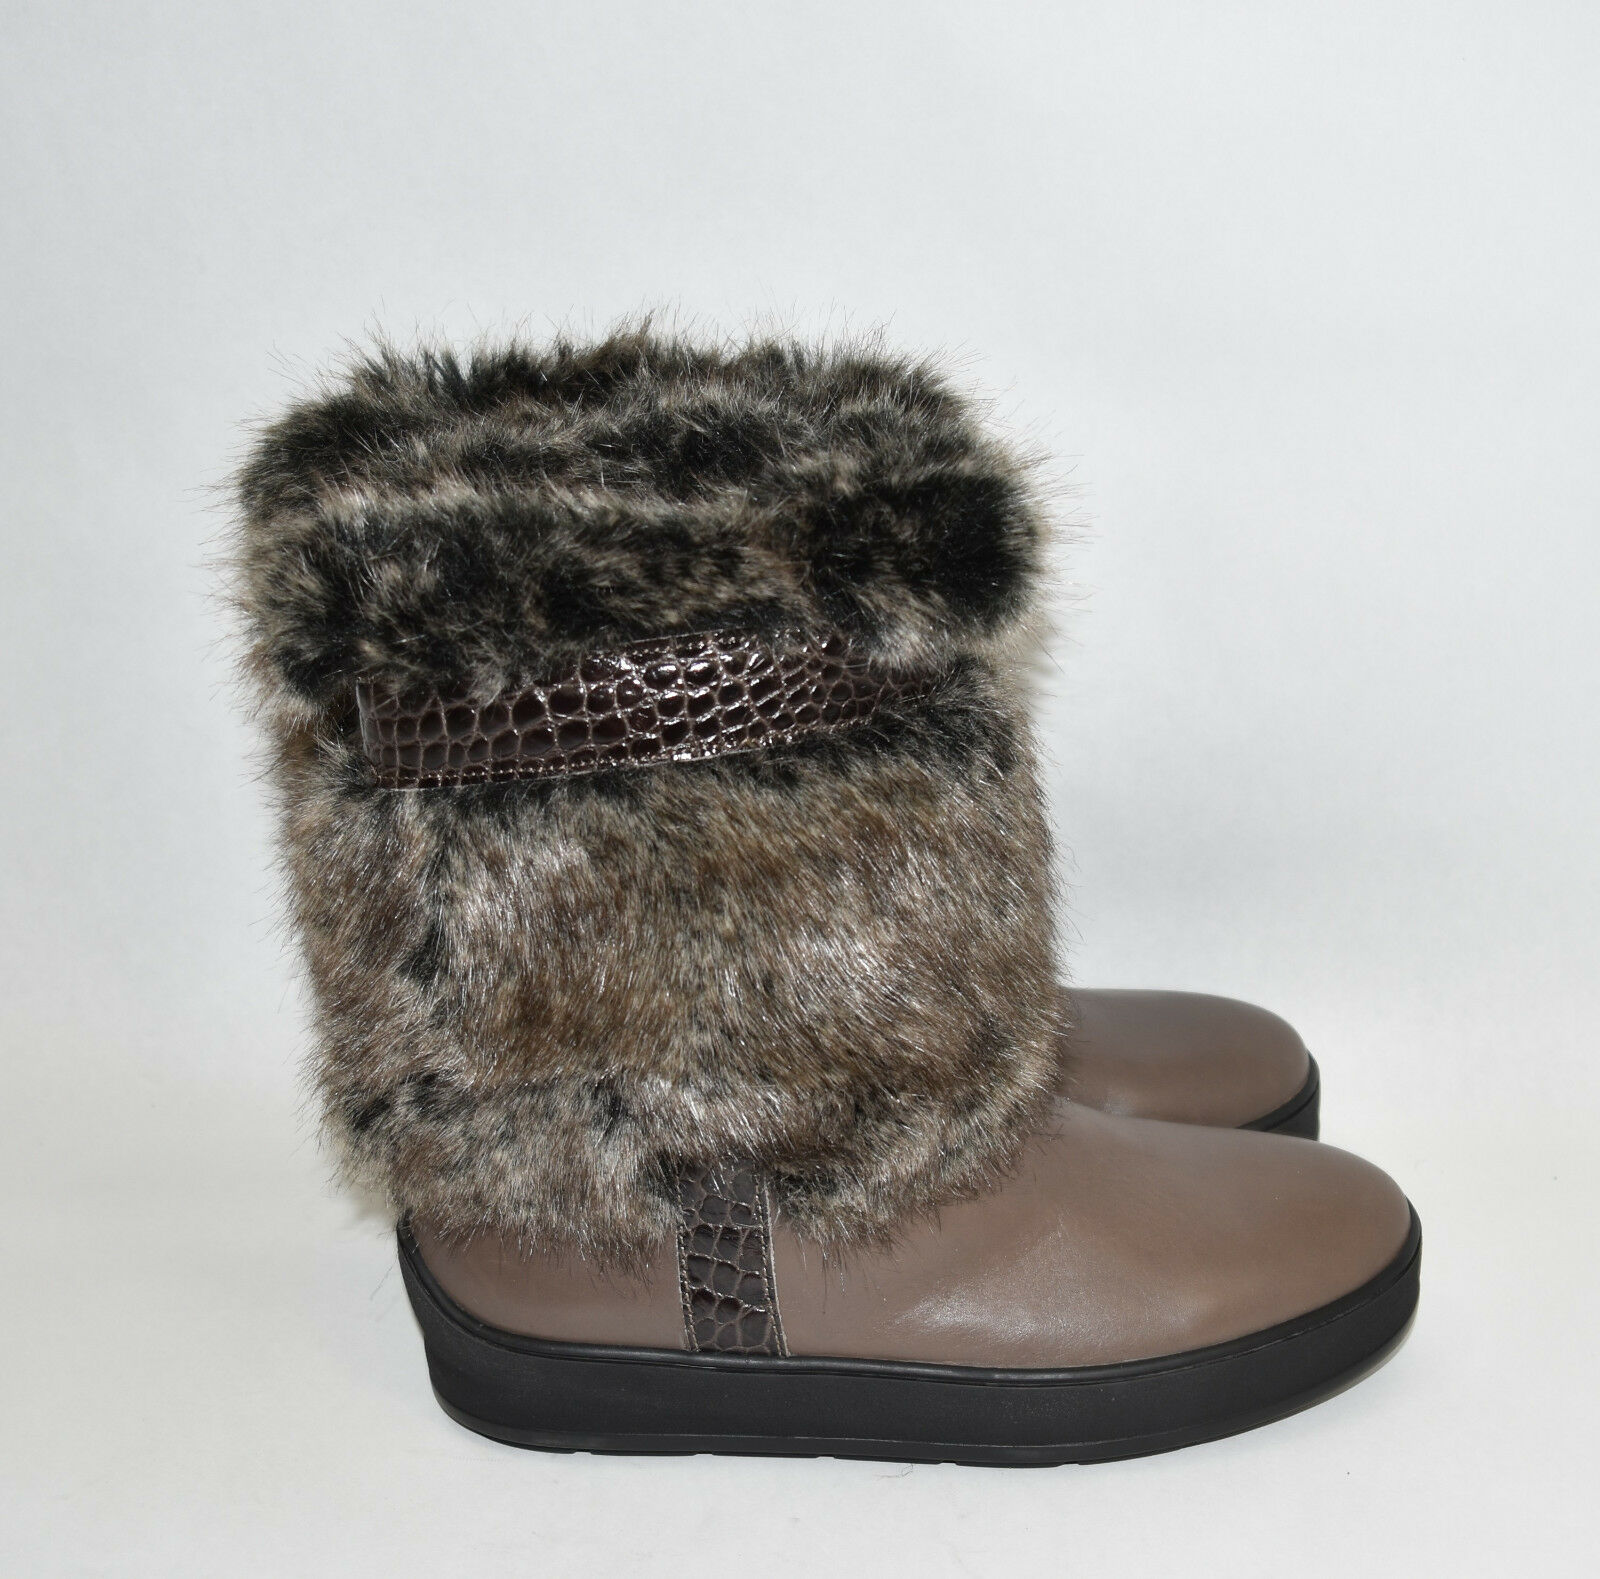 Aquatalia by Marvin K 'Kamila ' Taupe Brown Leather Boots Fur Faux Fur Boots Size 6.5 2df754